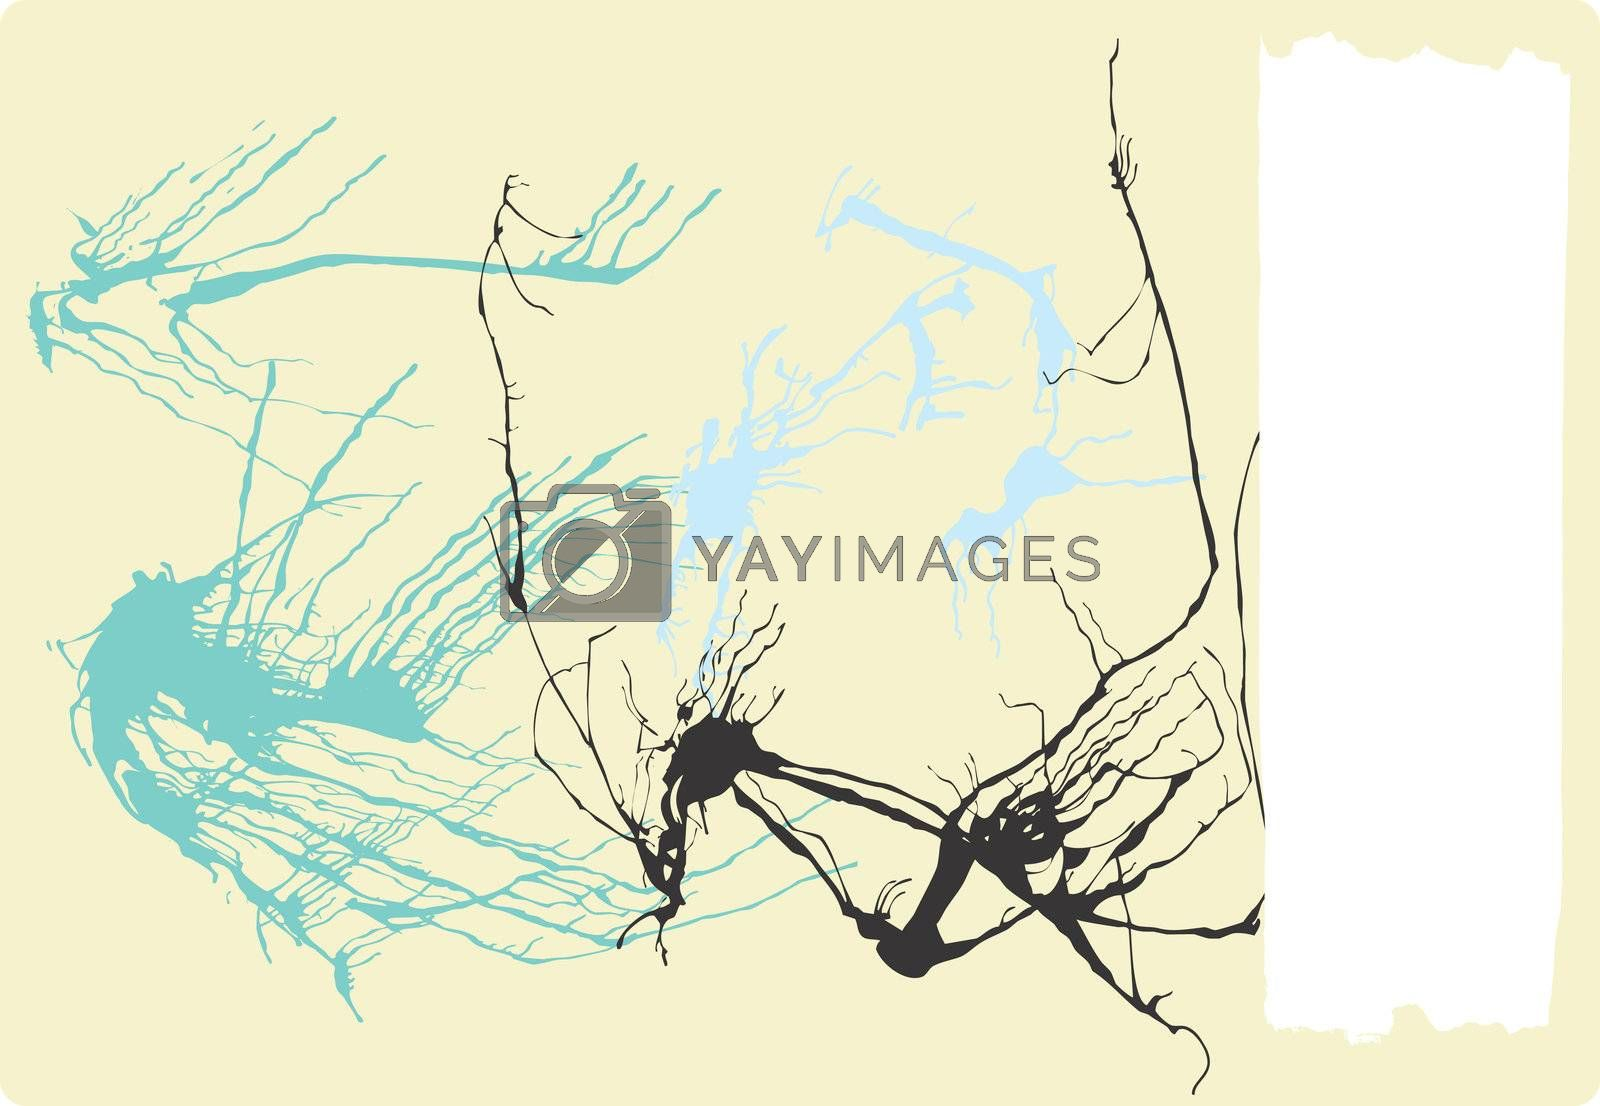 Abstract expressionist style background with spatter paint. Space for text.